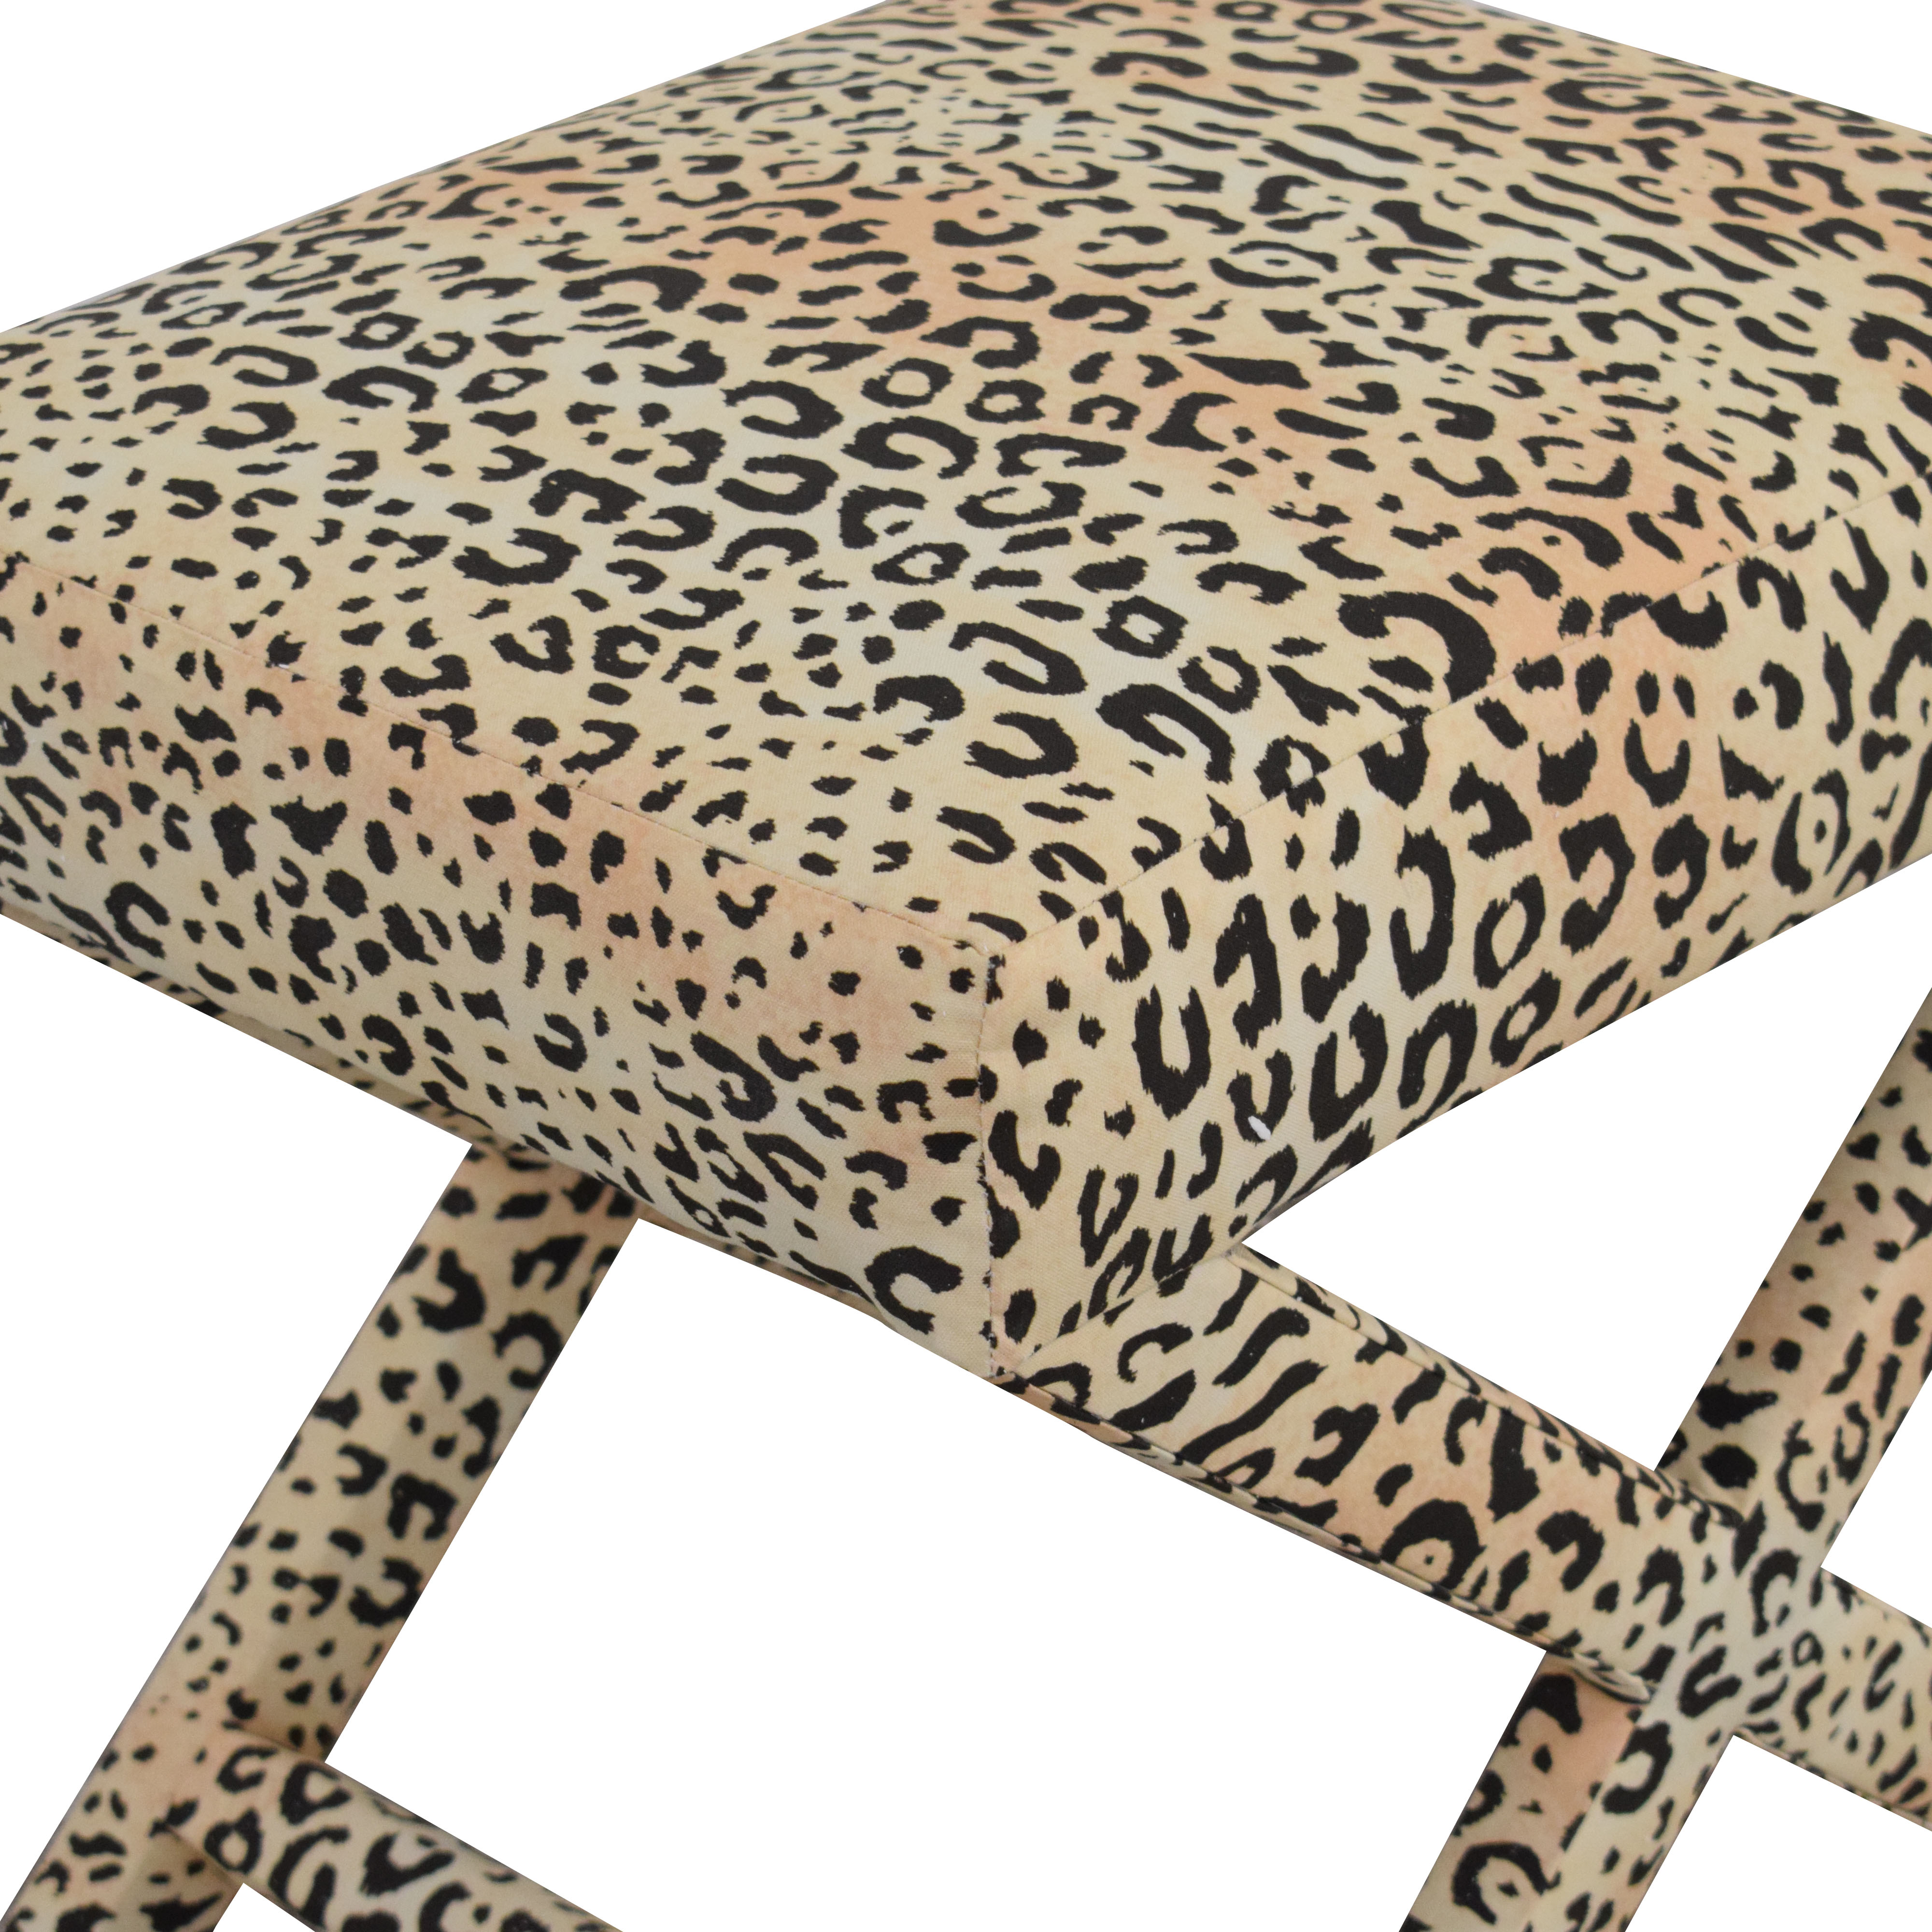 The Inside Ther Inside Leopard X-Bench on sale